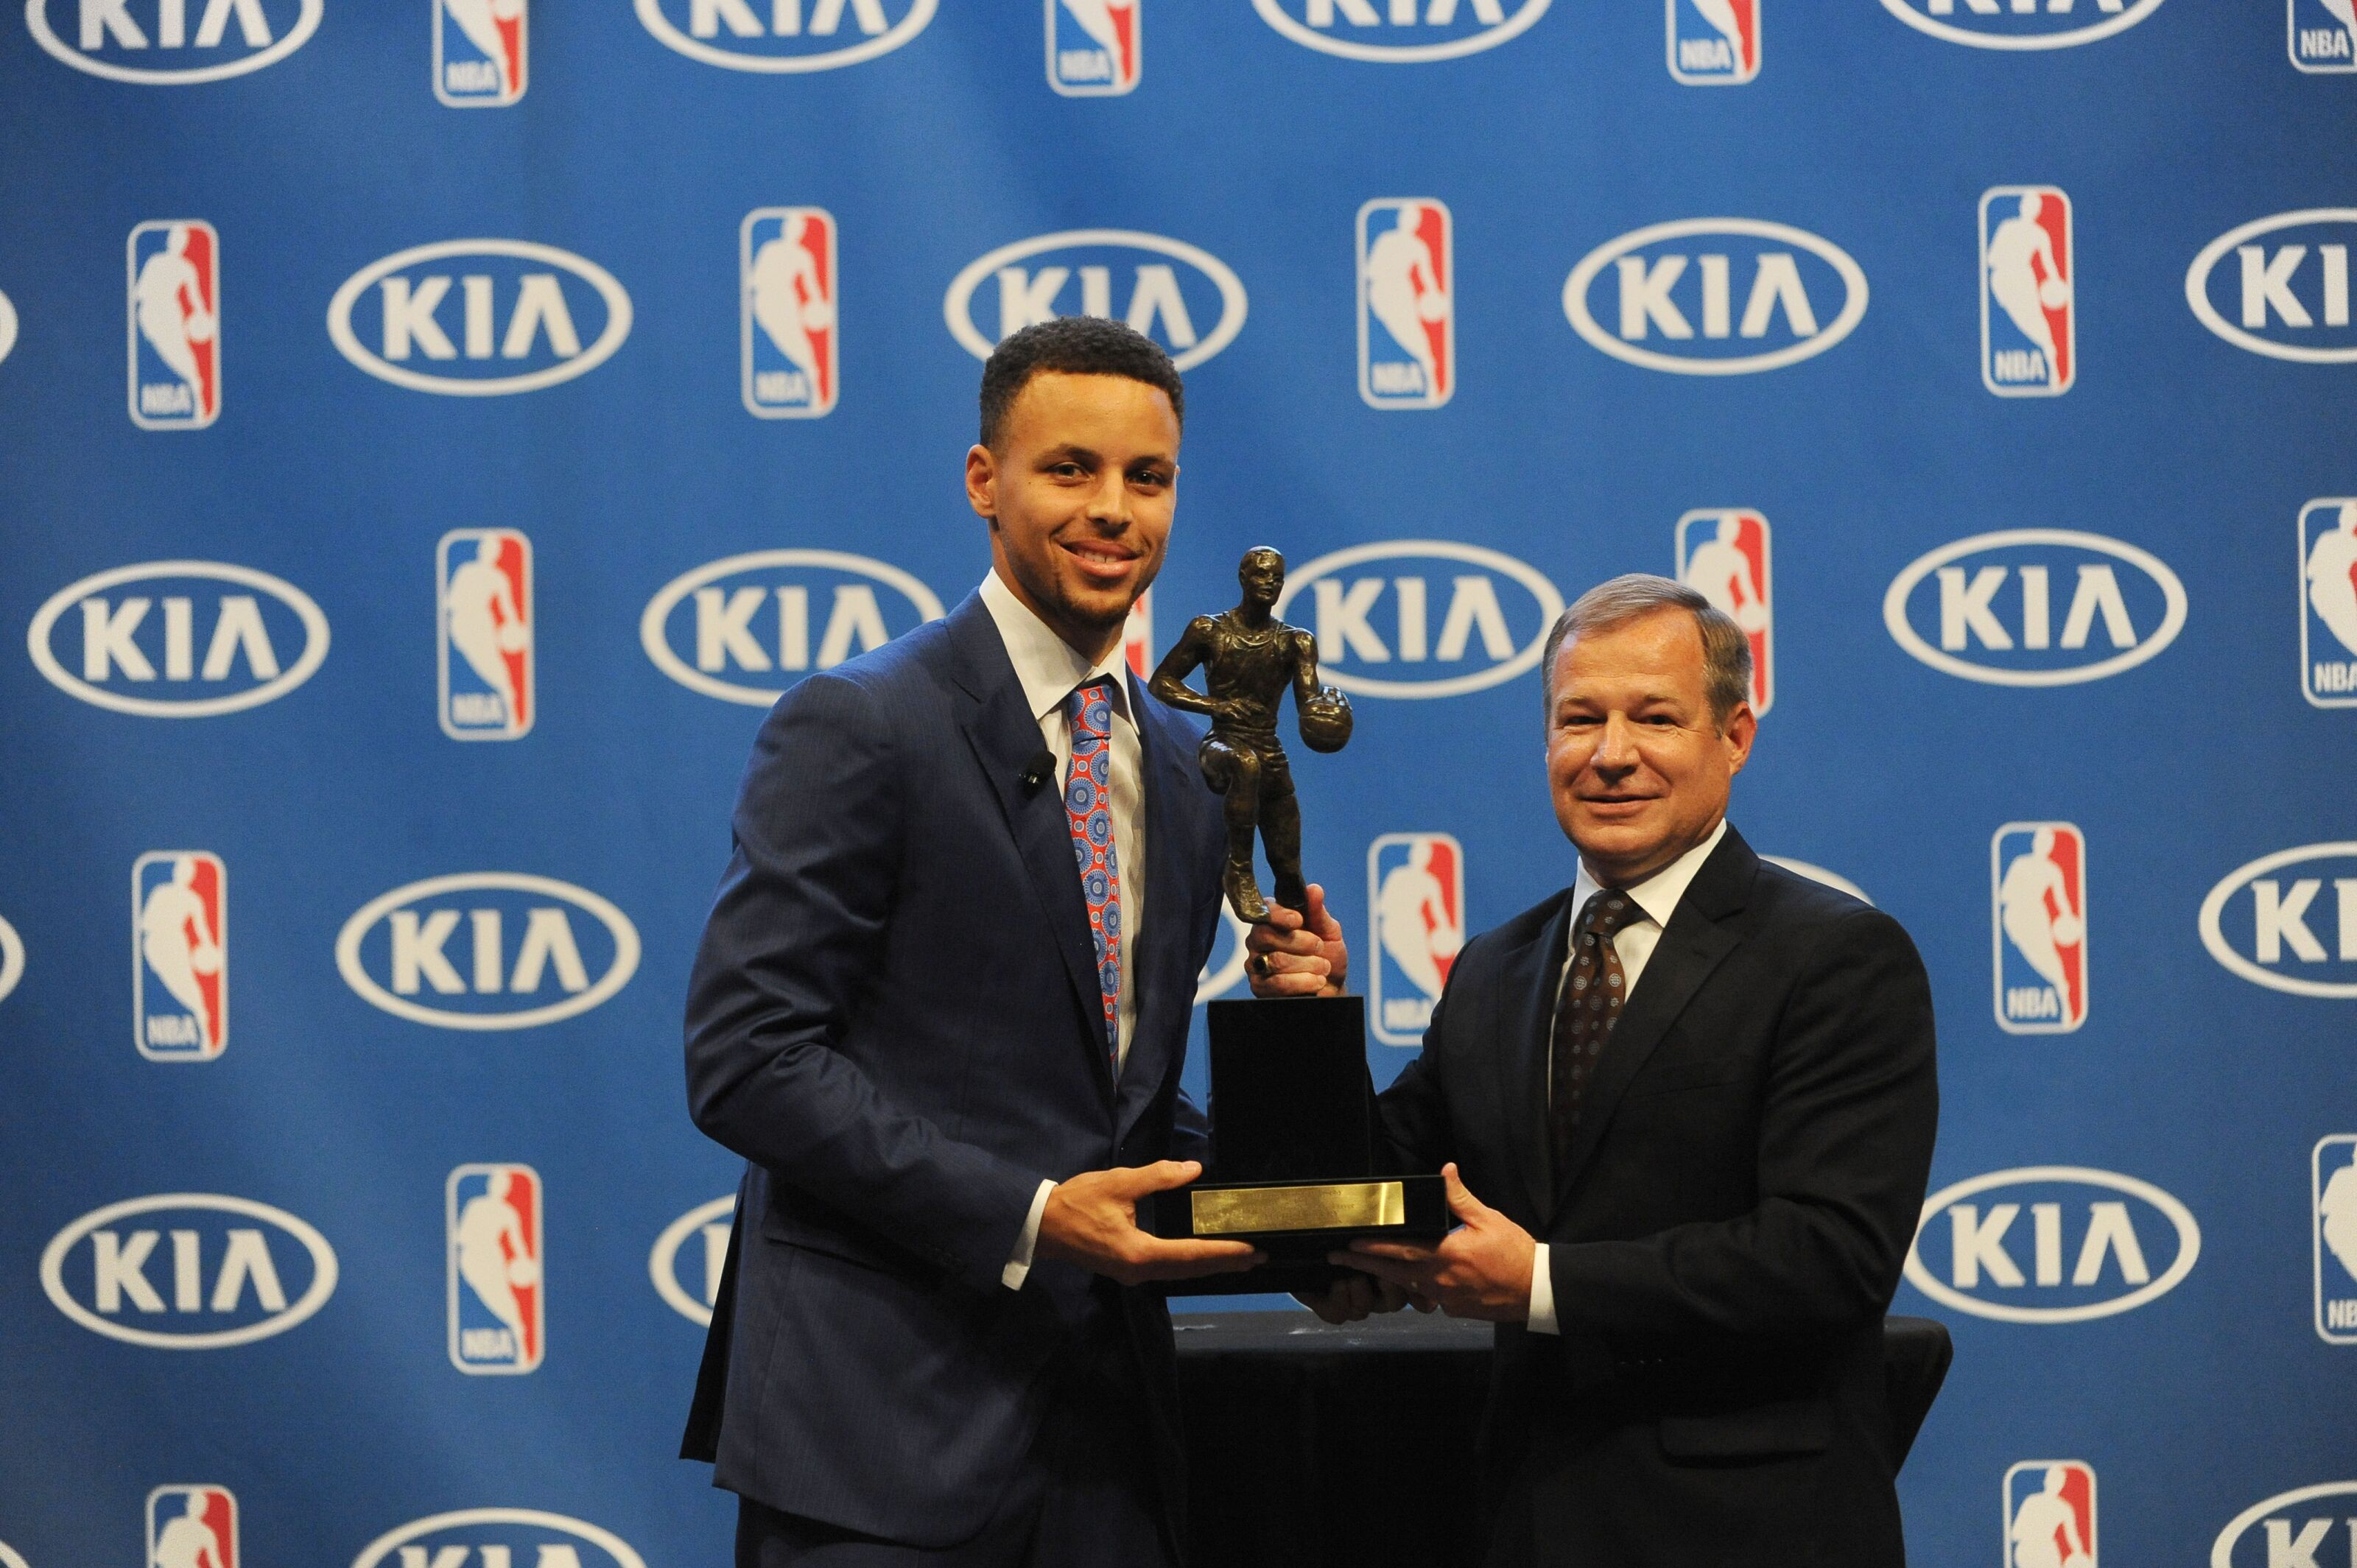 Golden State Warriors: Limiting Steph Curry's minutes should be a priority